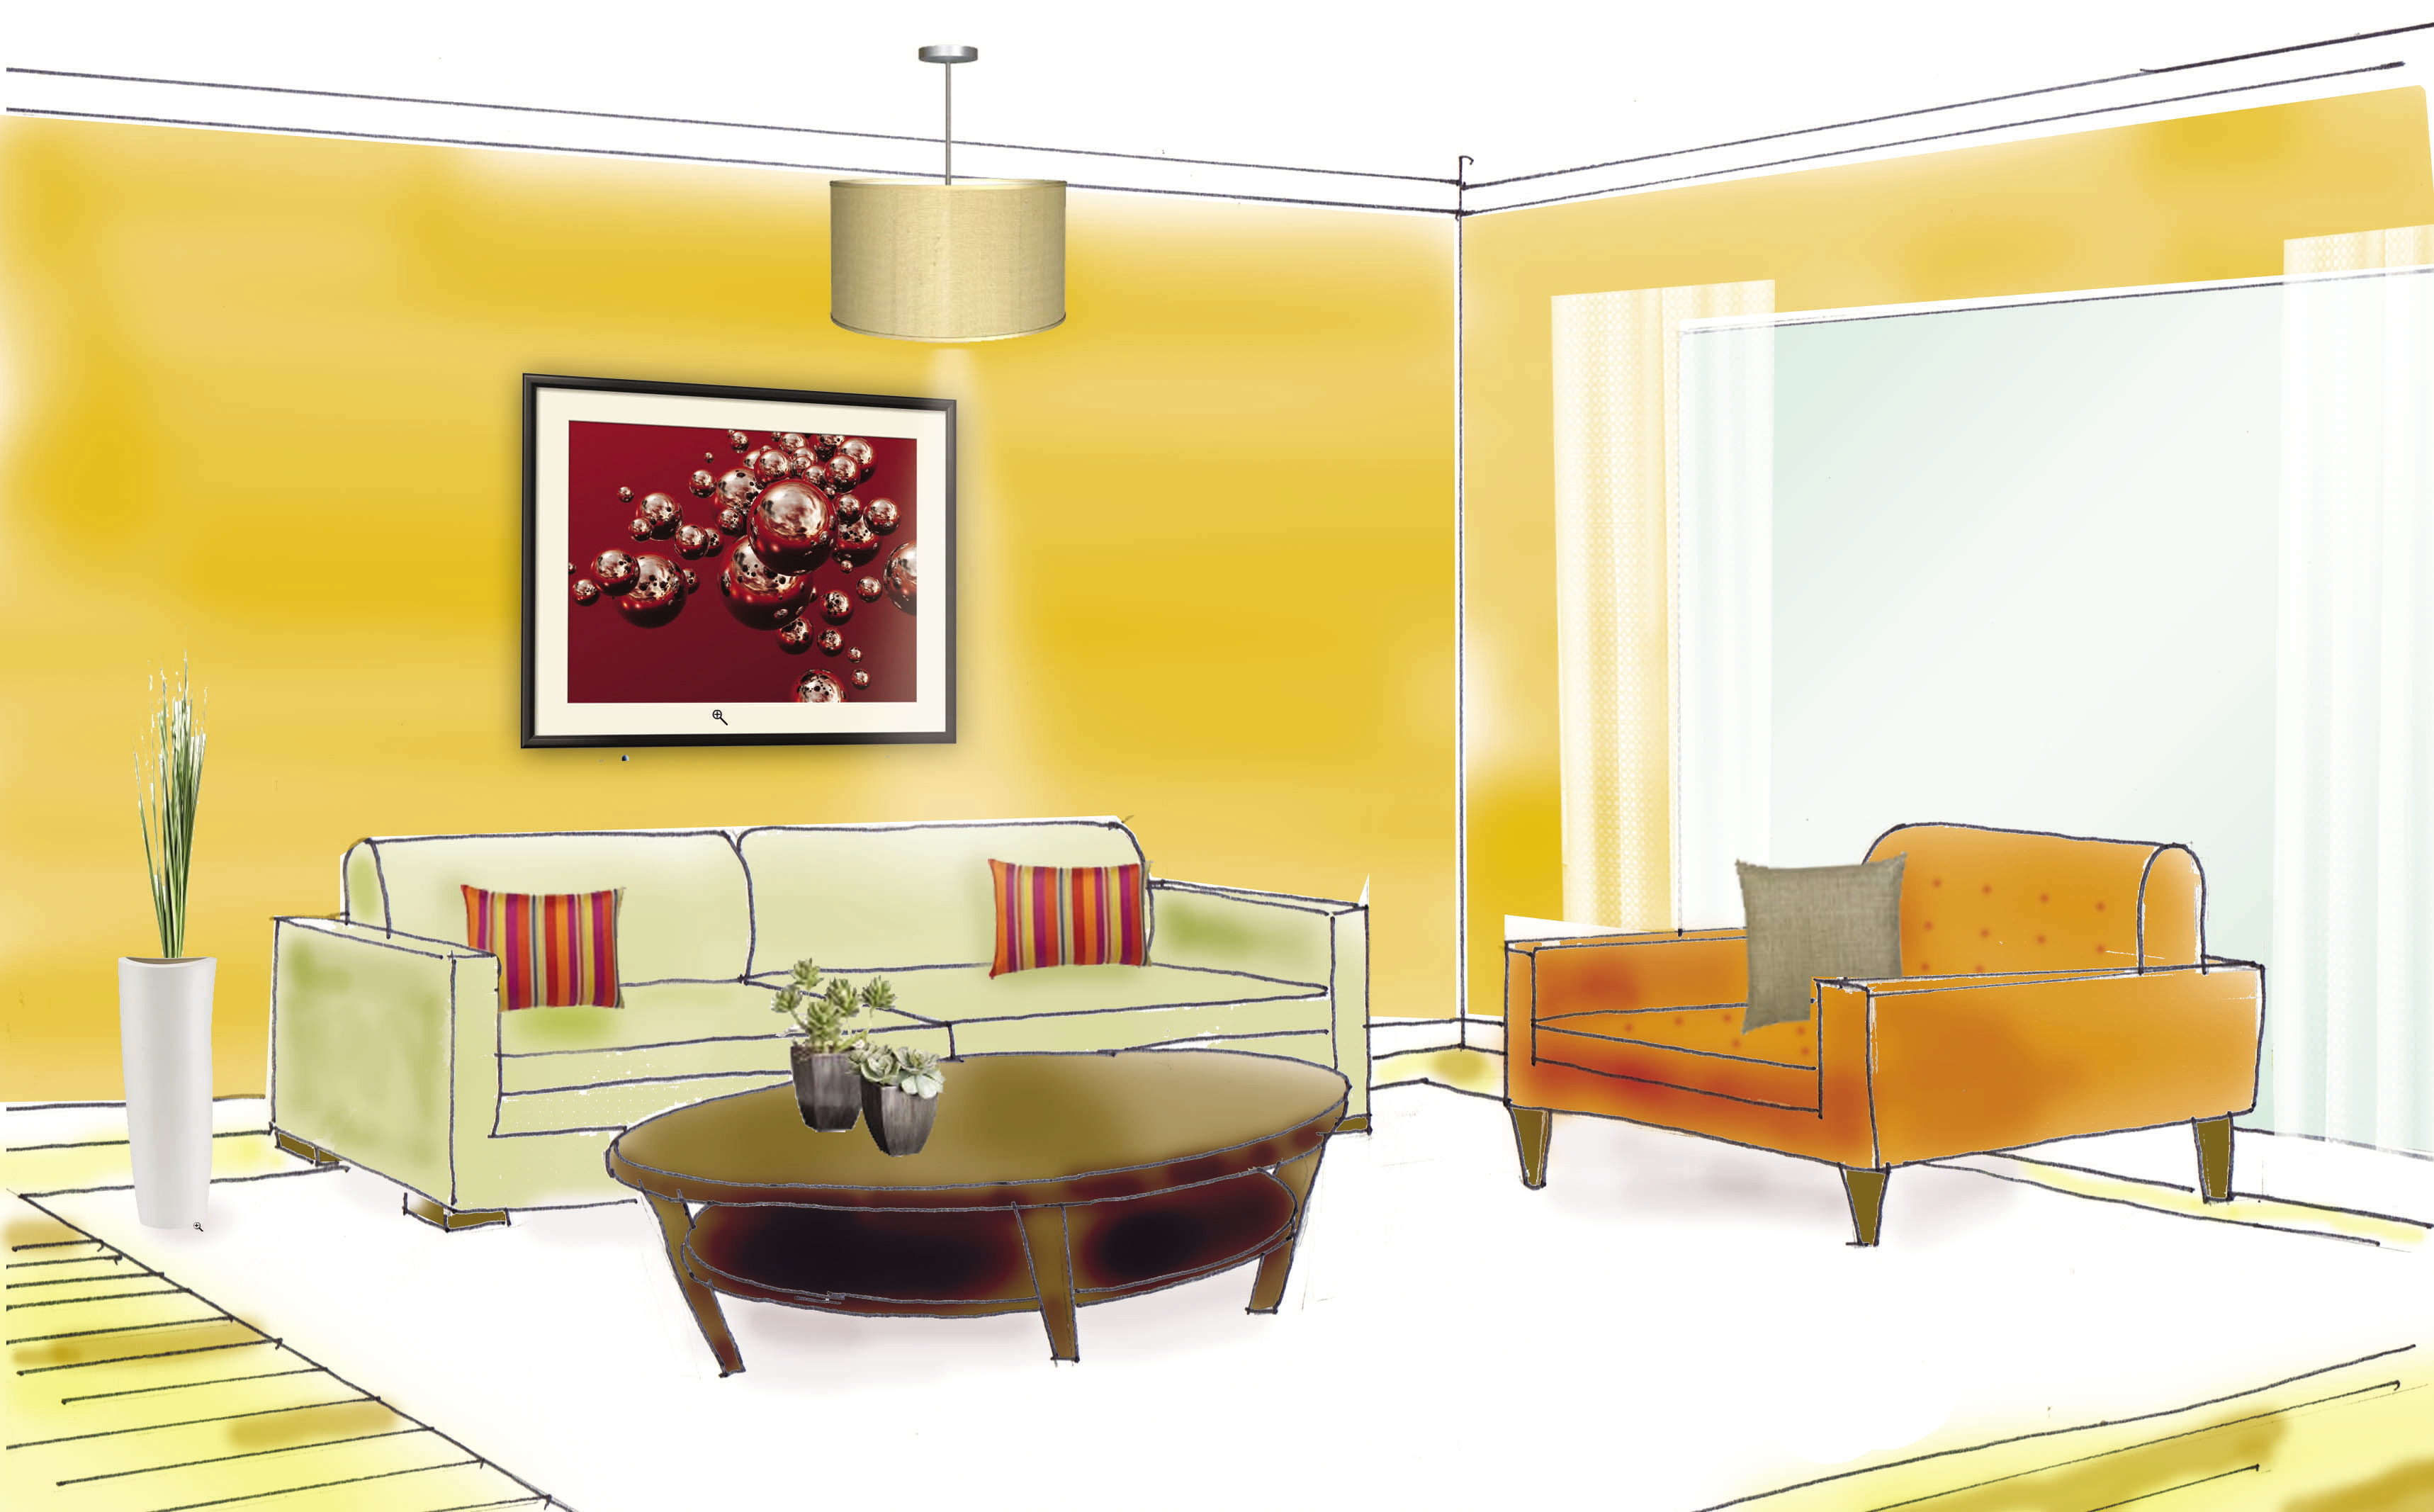 Drawn living room Sketches rendered drawn This Hangzhou